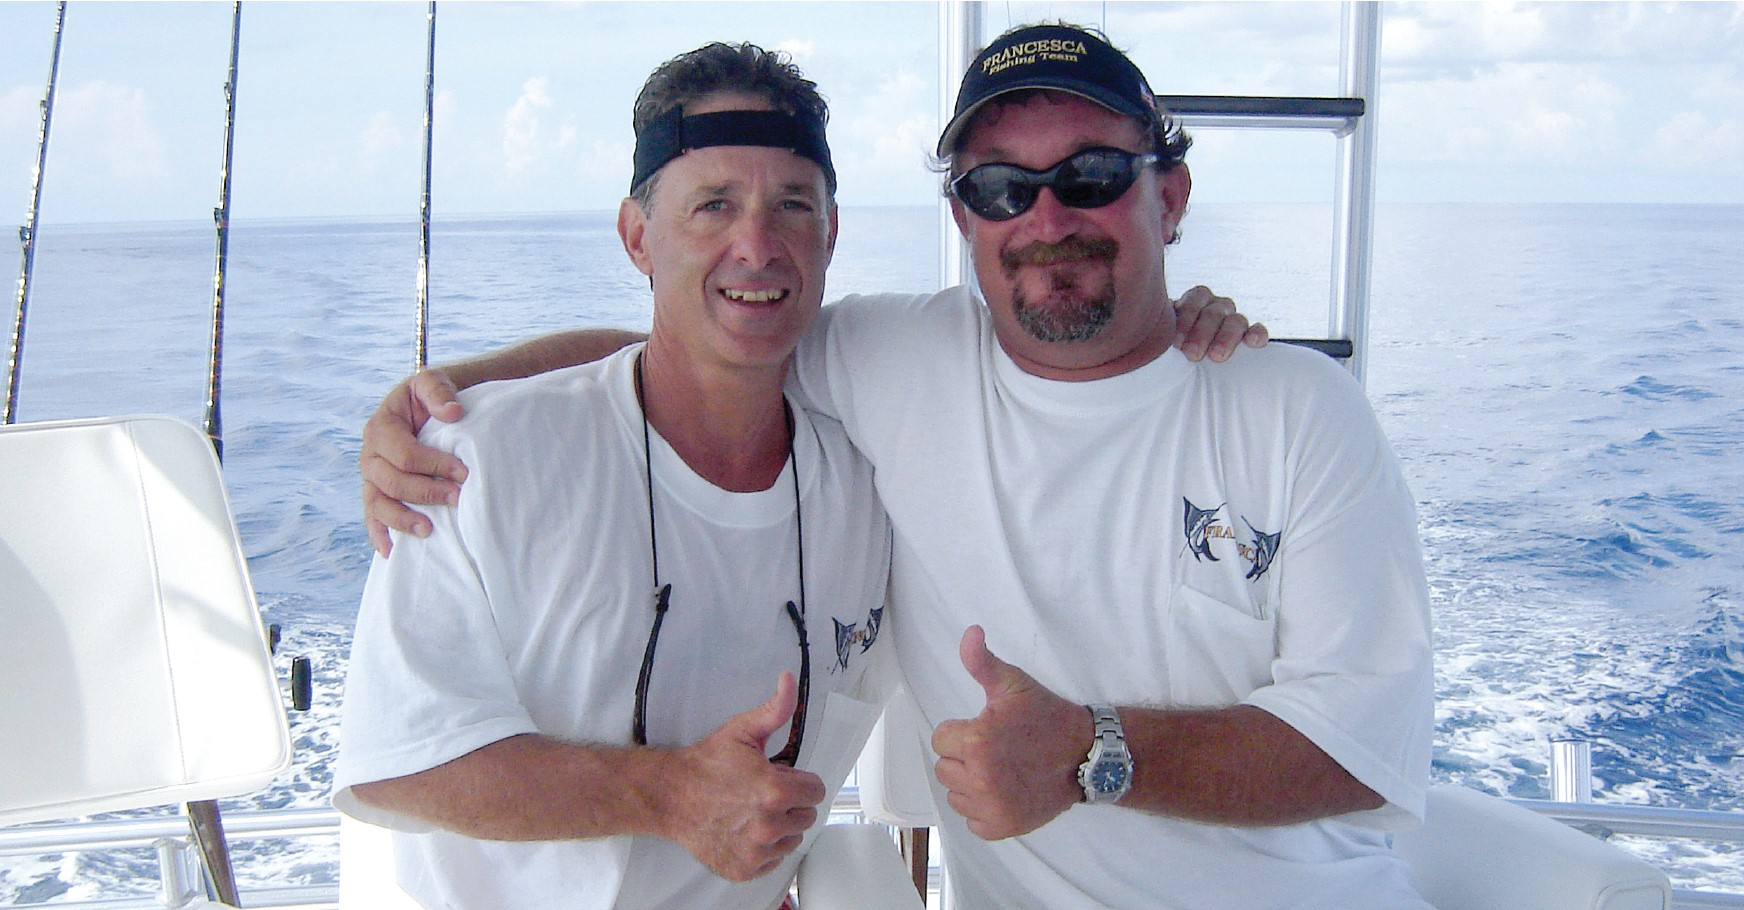 captain and boat owner on boat